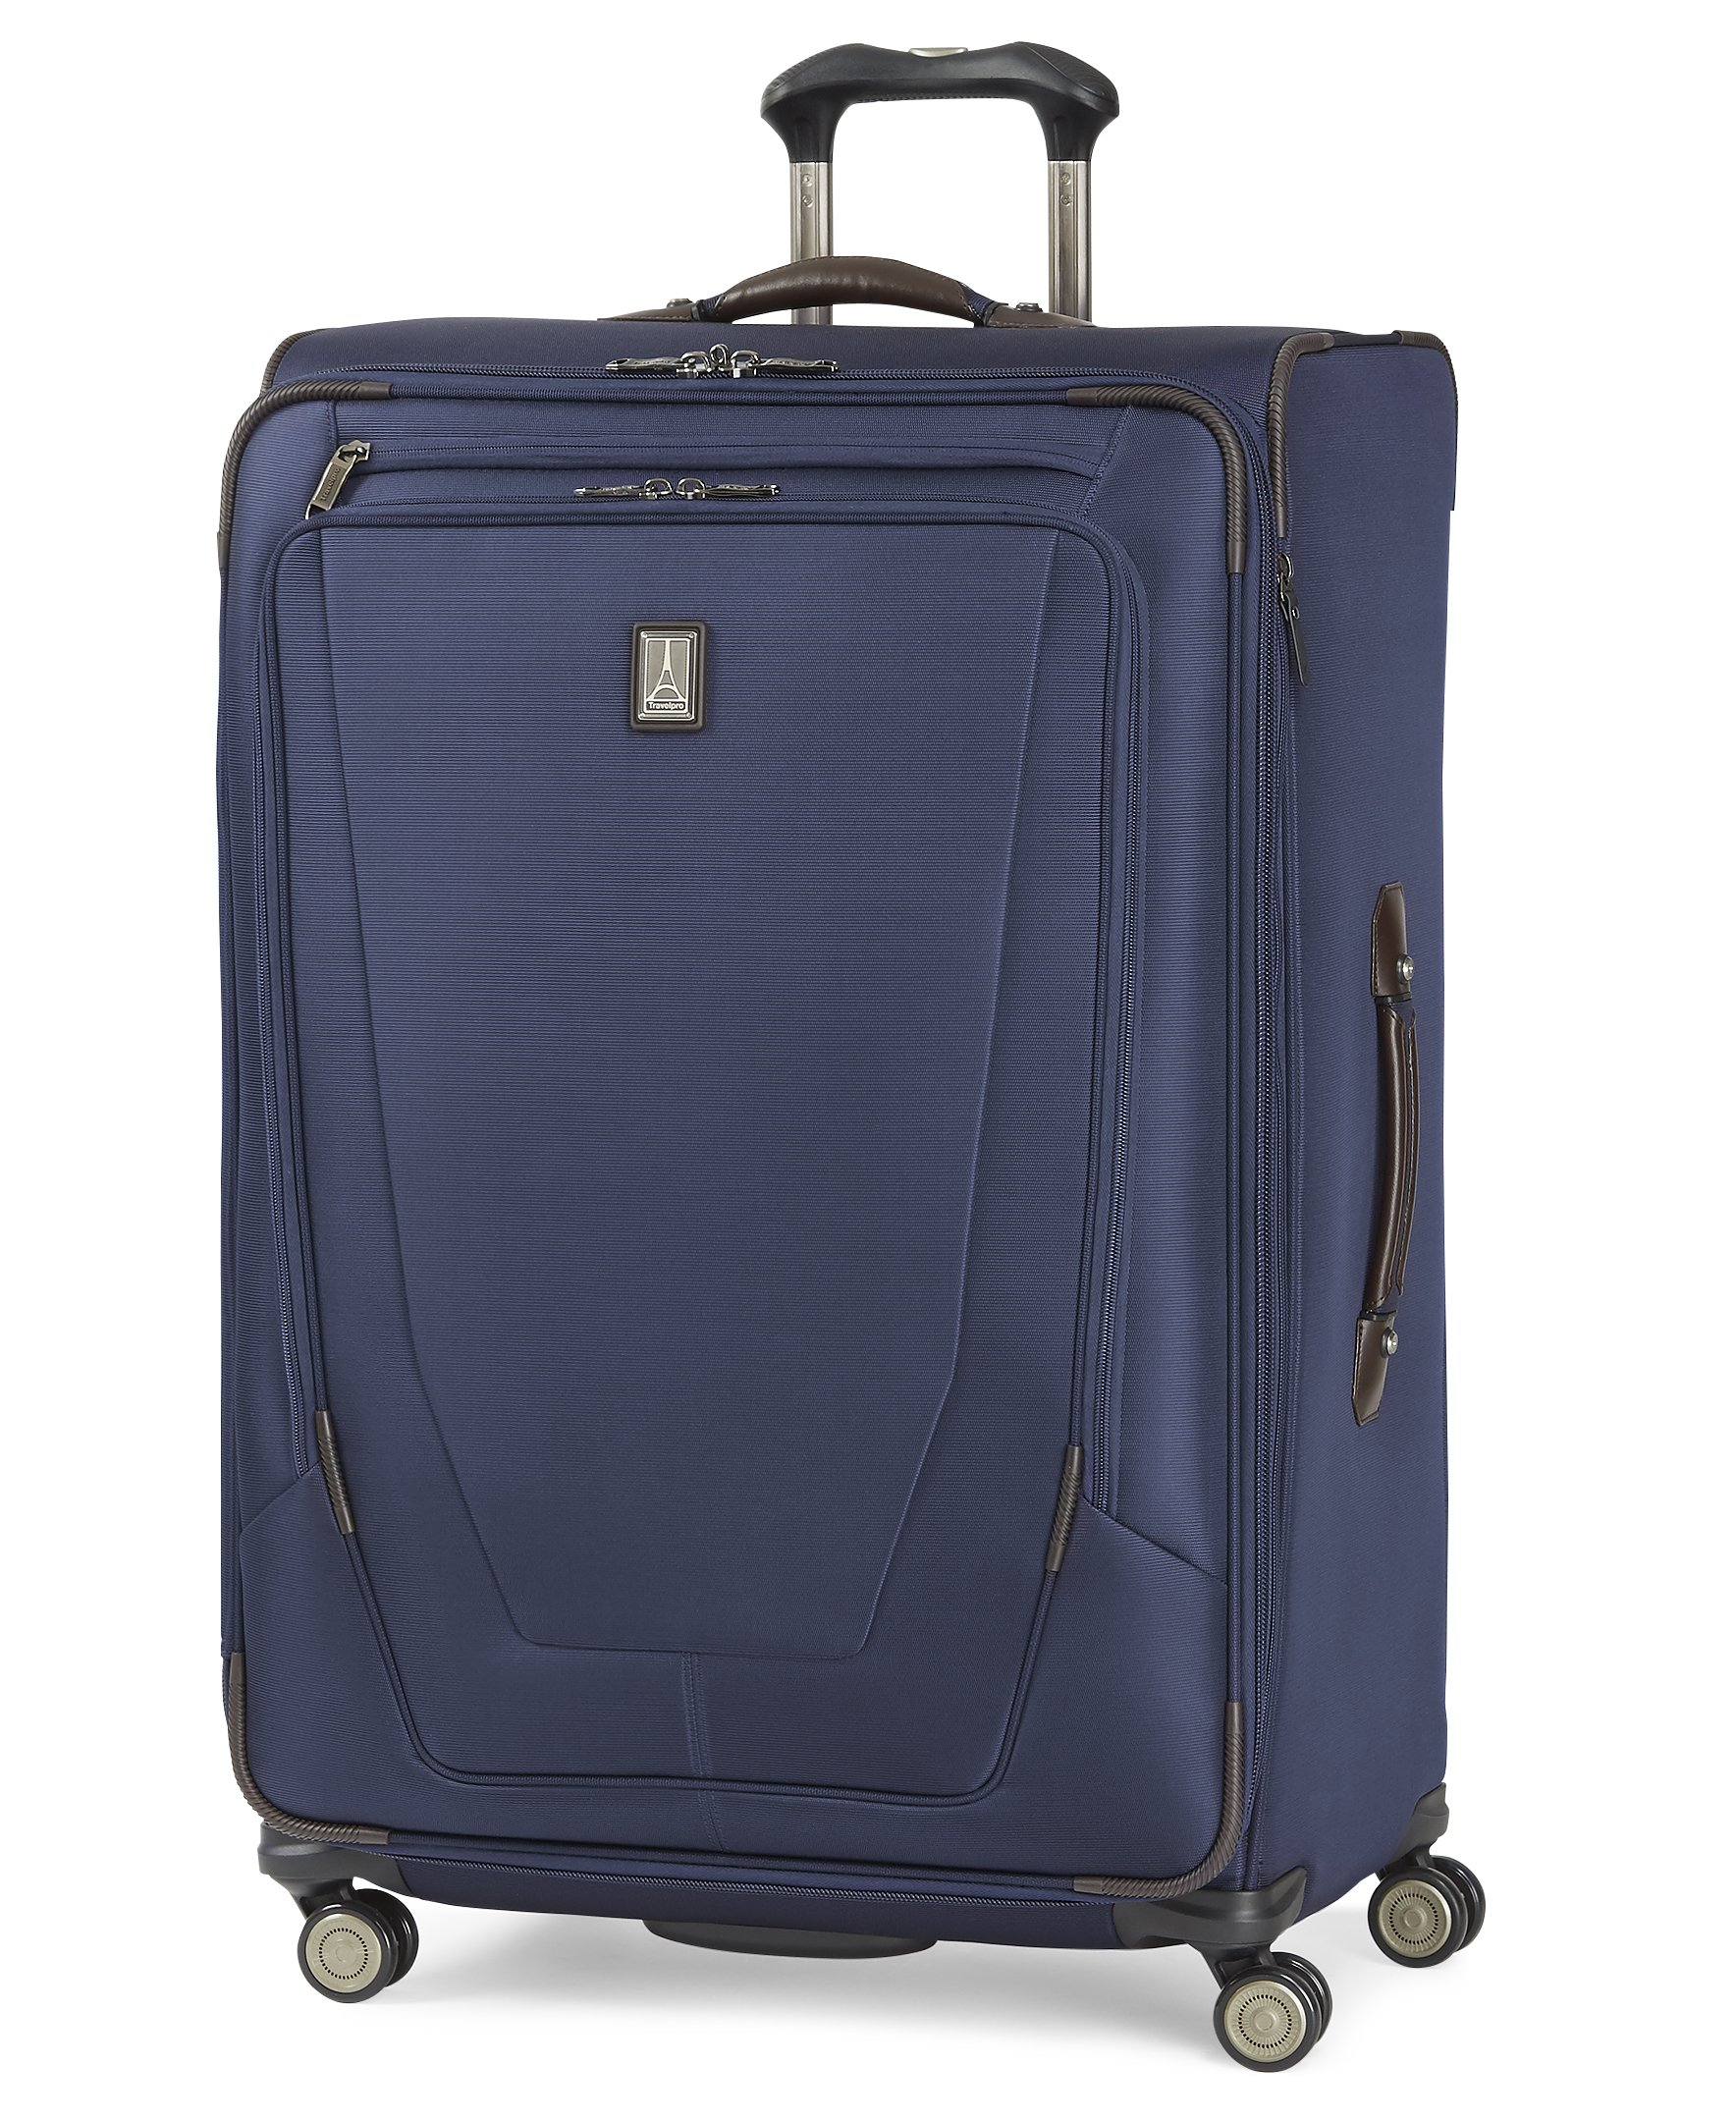 Travelpro Crew 11 29'' Expandable Spinner Suitcases, Navy by Travelpro